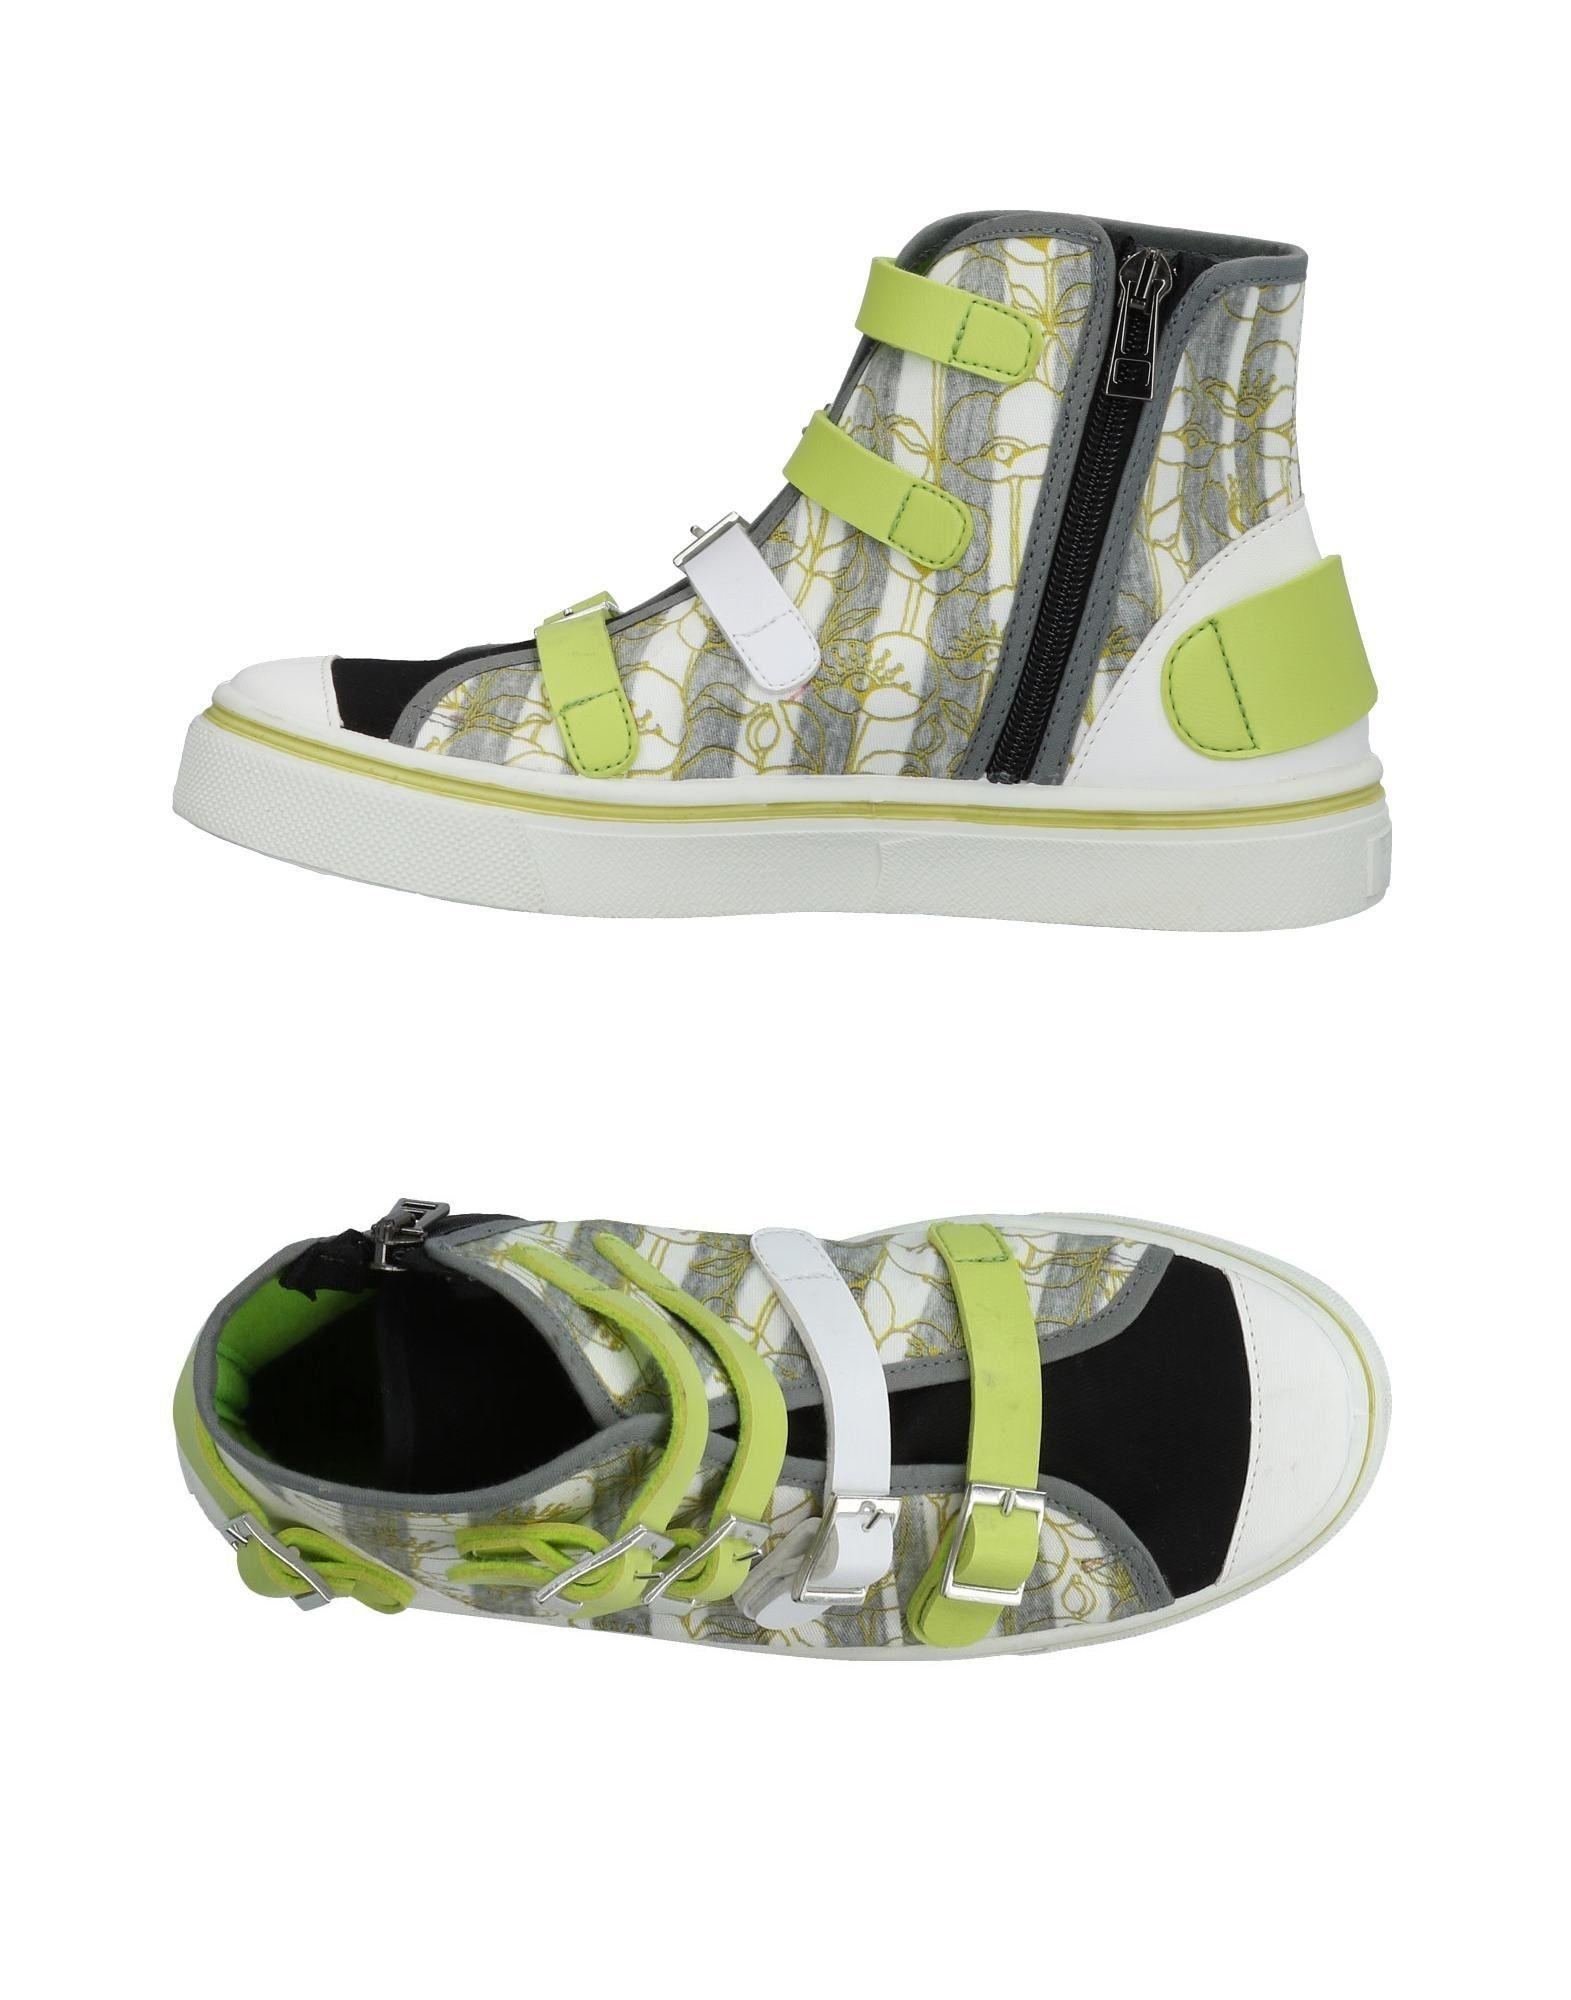 Pianurastudio High-tops Et Chaussures De Sport YgIDqw4